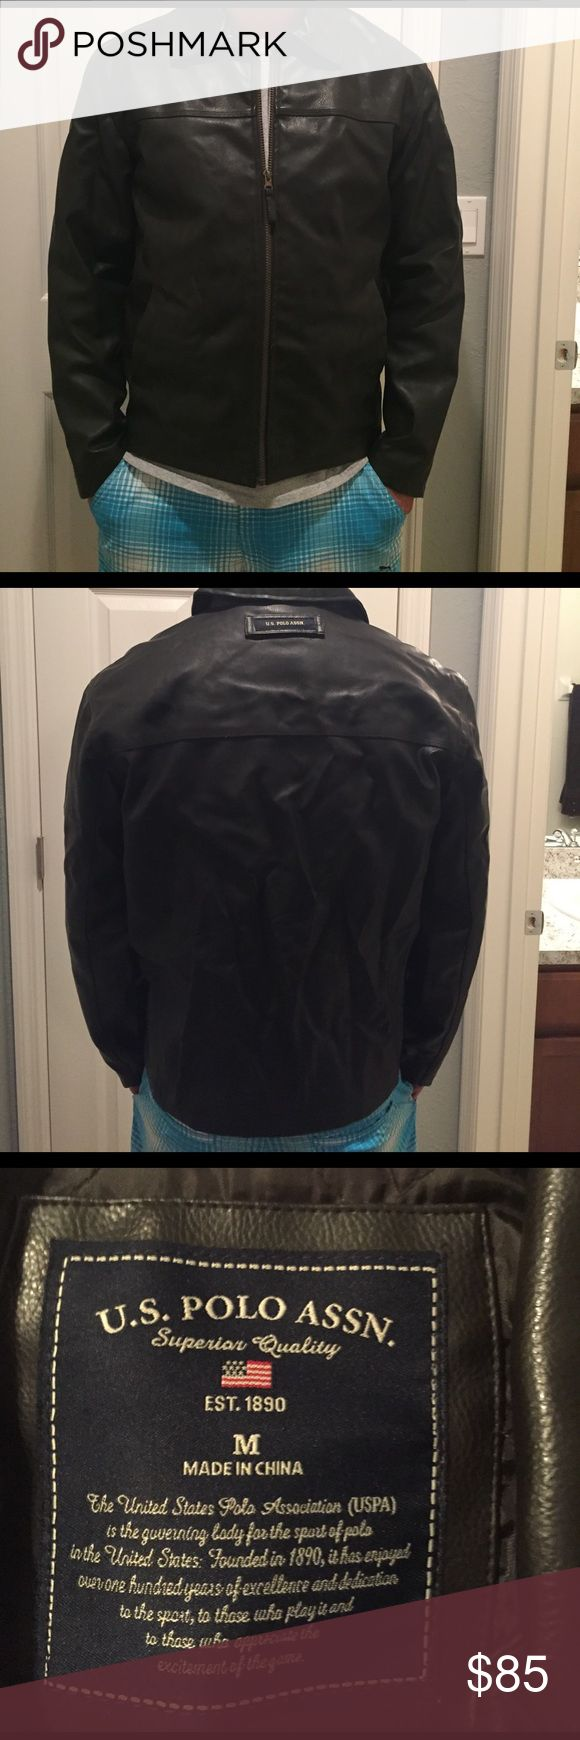 ⚡️SALE⚡️US Polo leather jacket (M) US Polo Assn. men's leather jacket. It's too warm in Florida for this . U.S. Polo Assn. Jackets & Coats